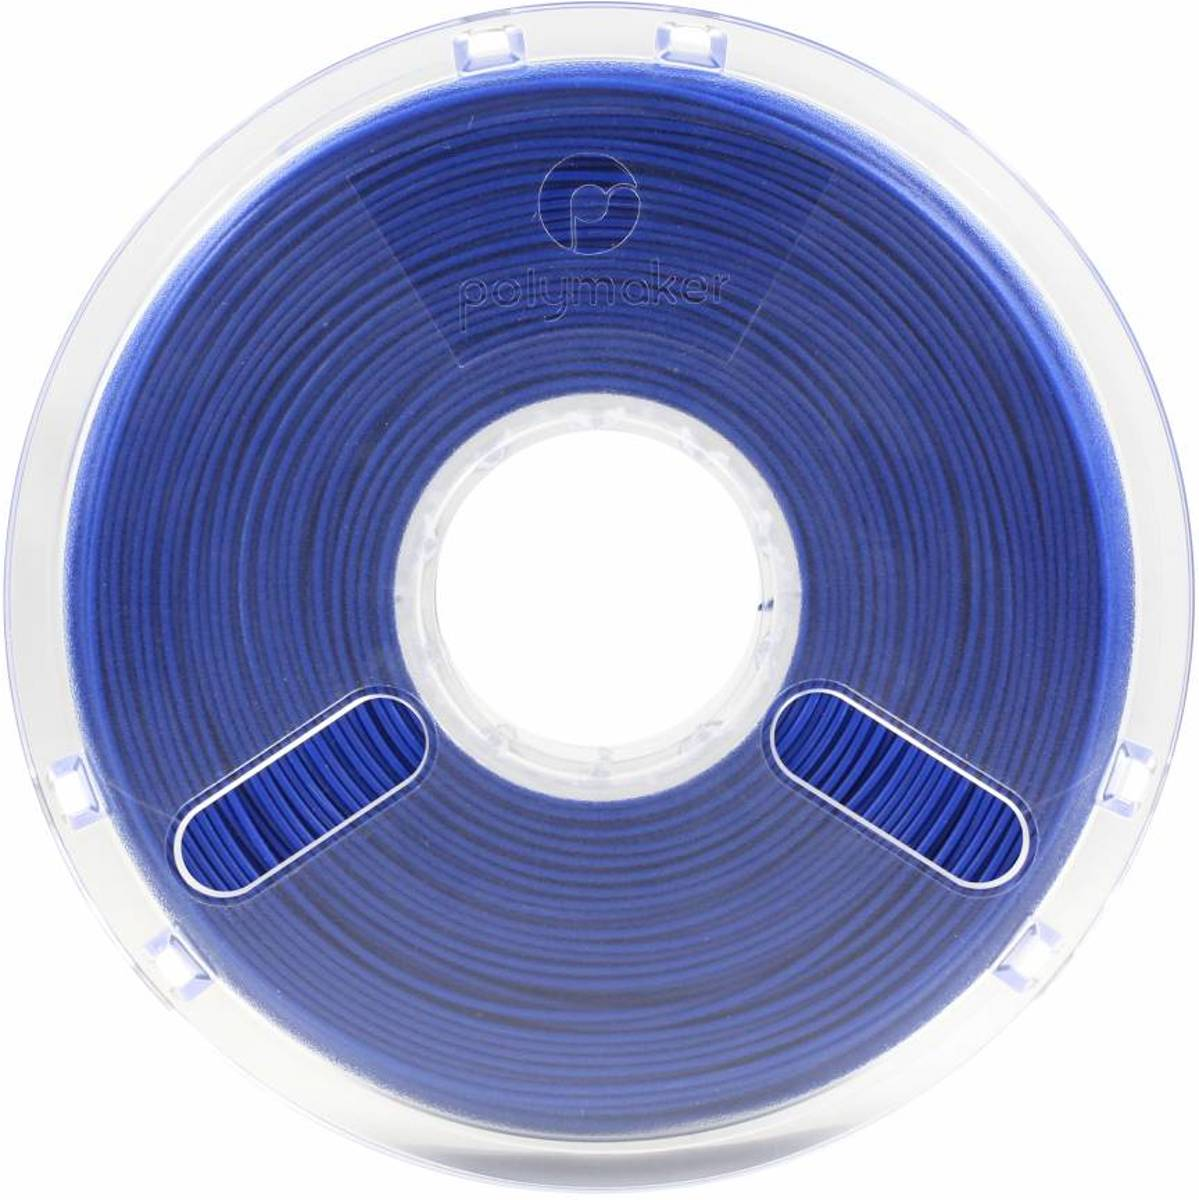 Polymaker Filament voor 3D-printer PolyMax PLA Jam Free Technology 2.85 mm 0.75 kg - True Blue